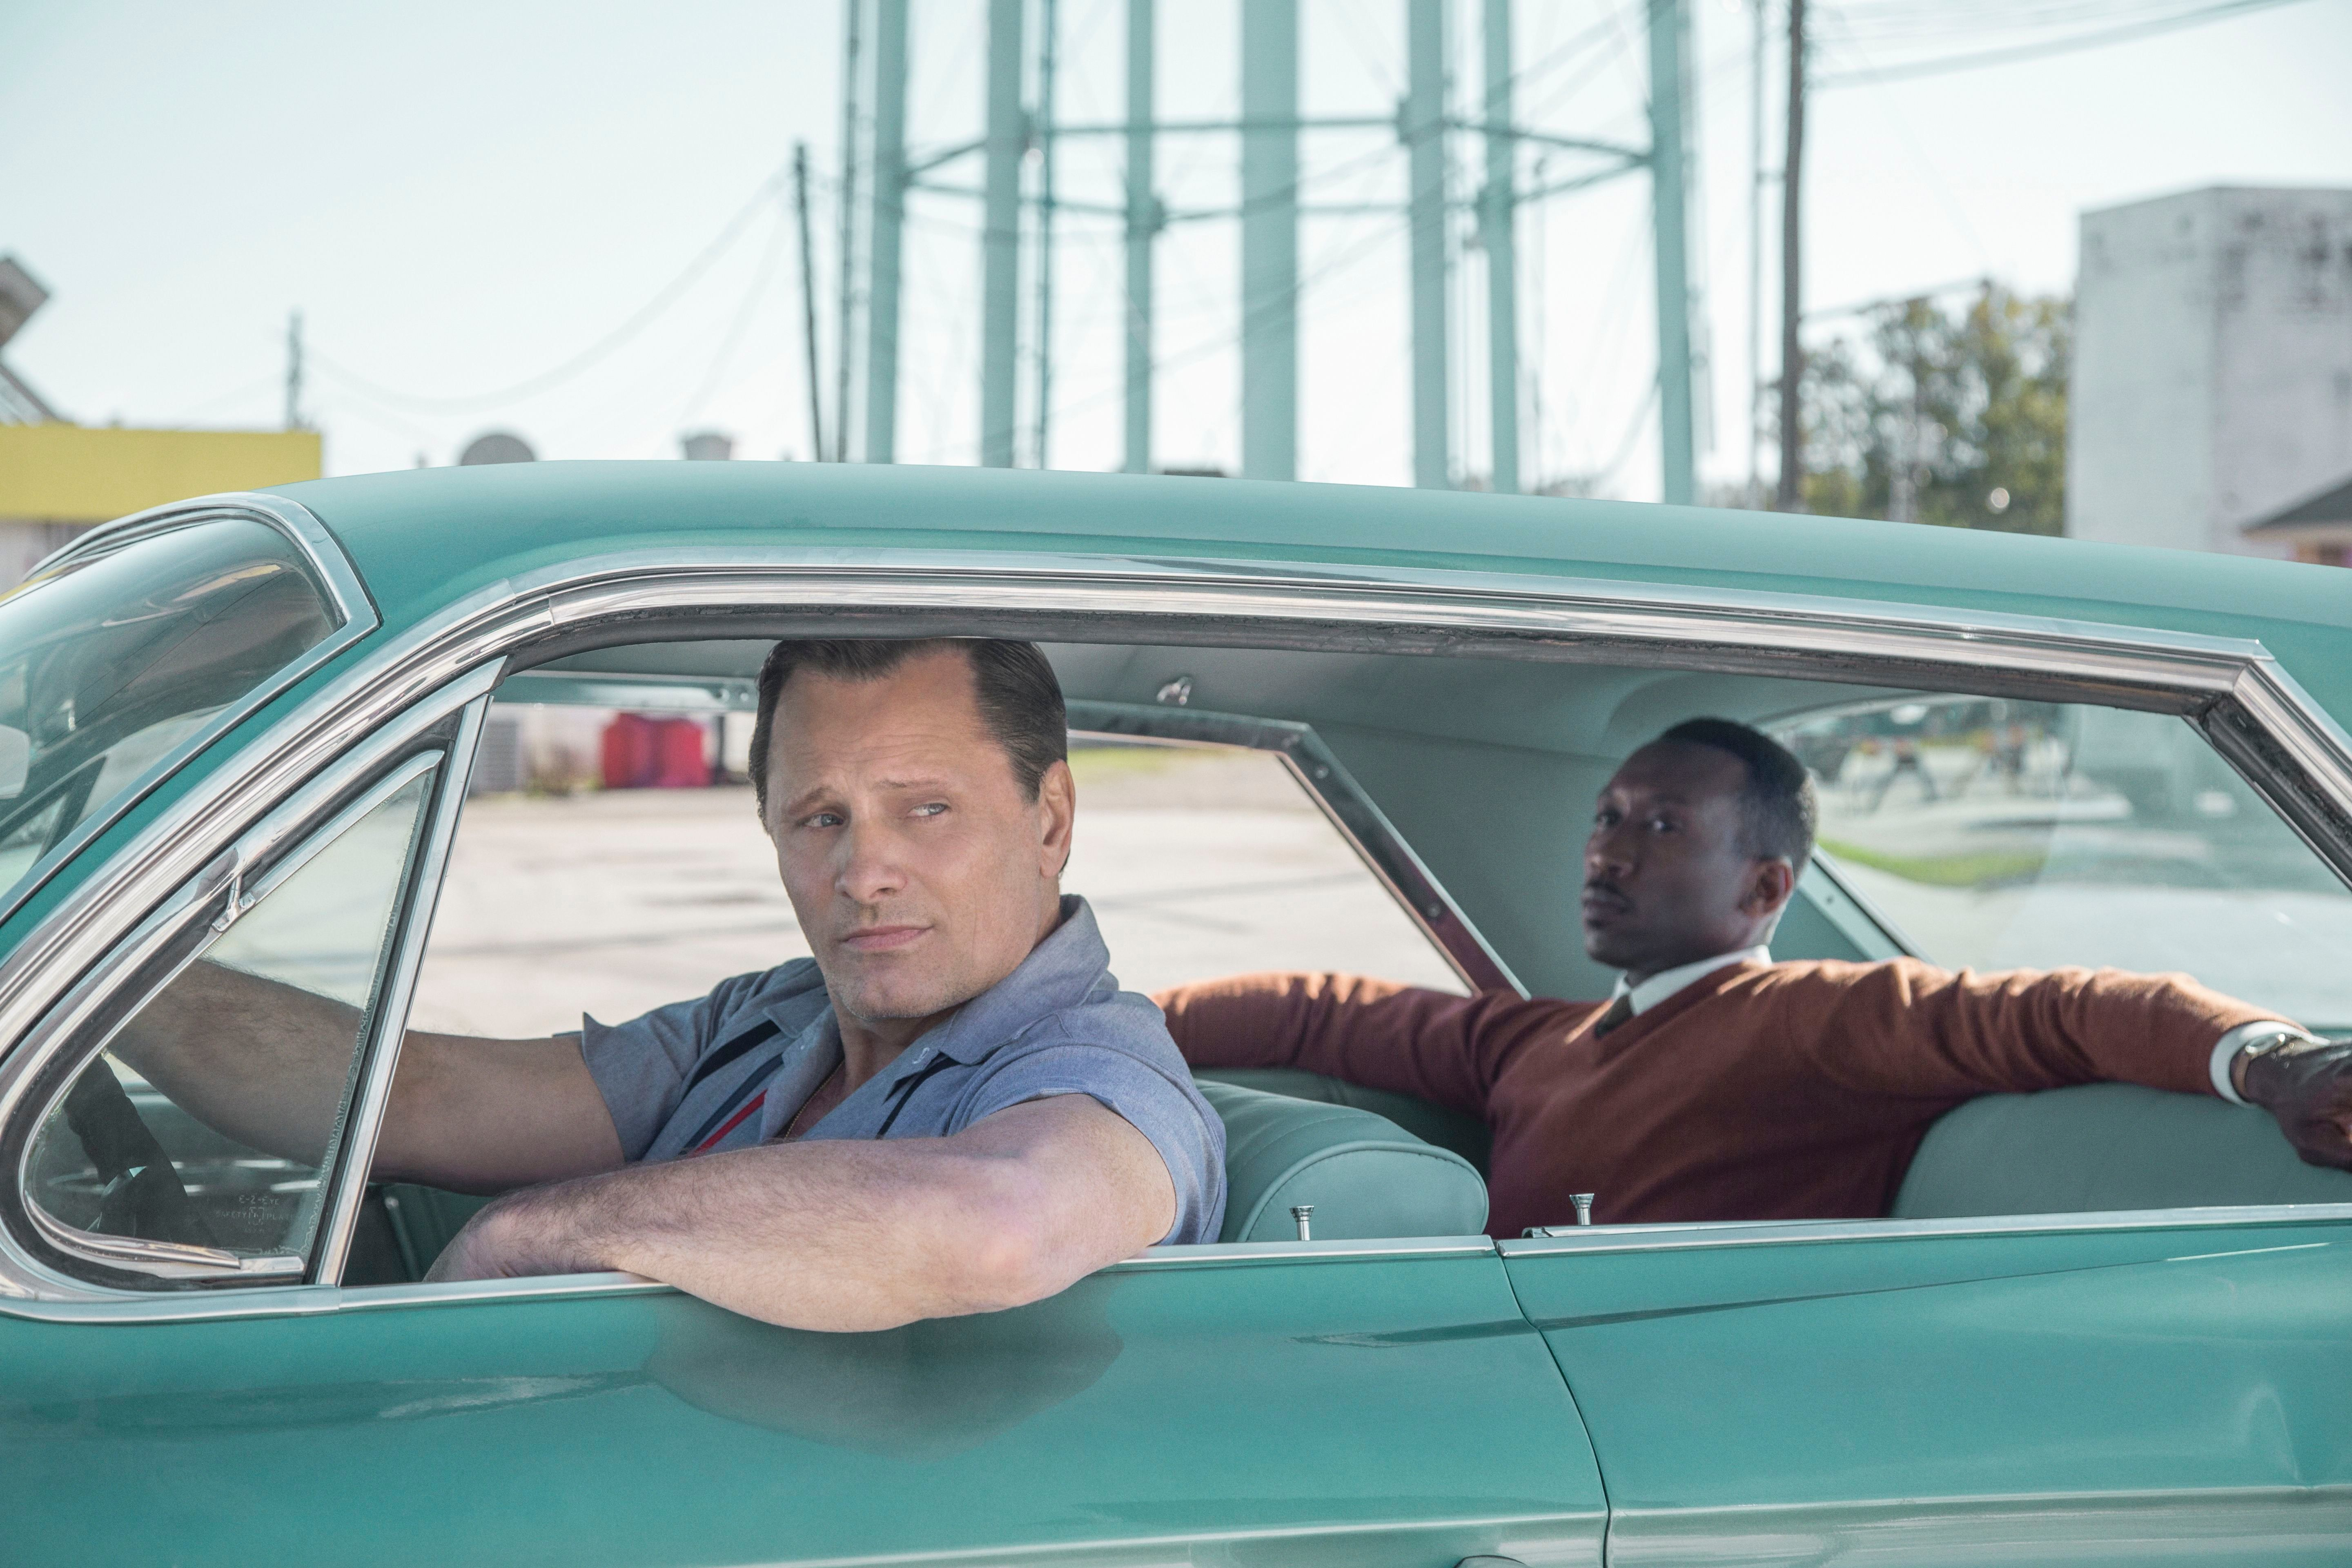 'Green Book' Hit With More Bombshells As Director Apologises For Past